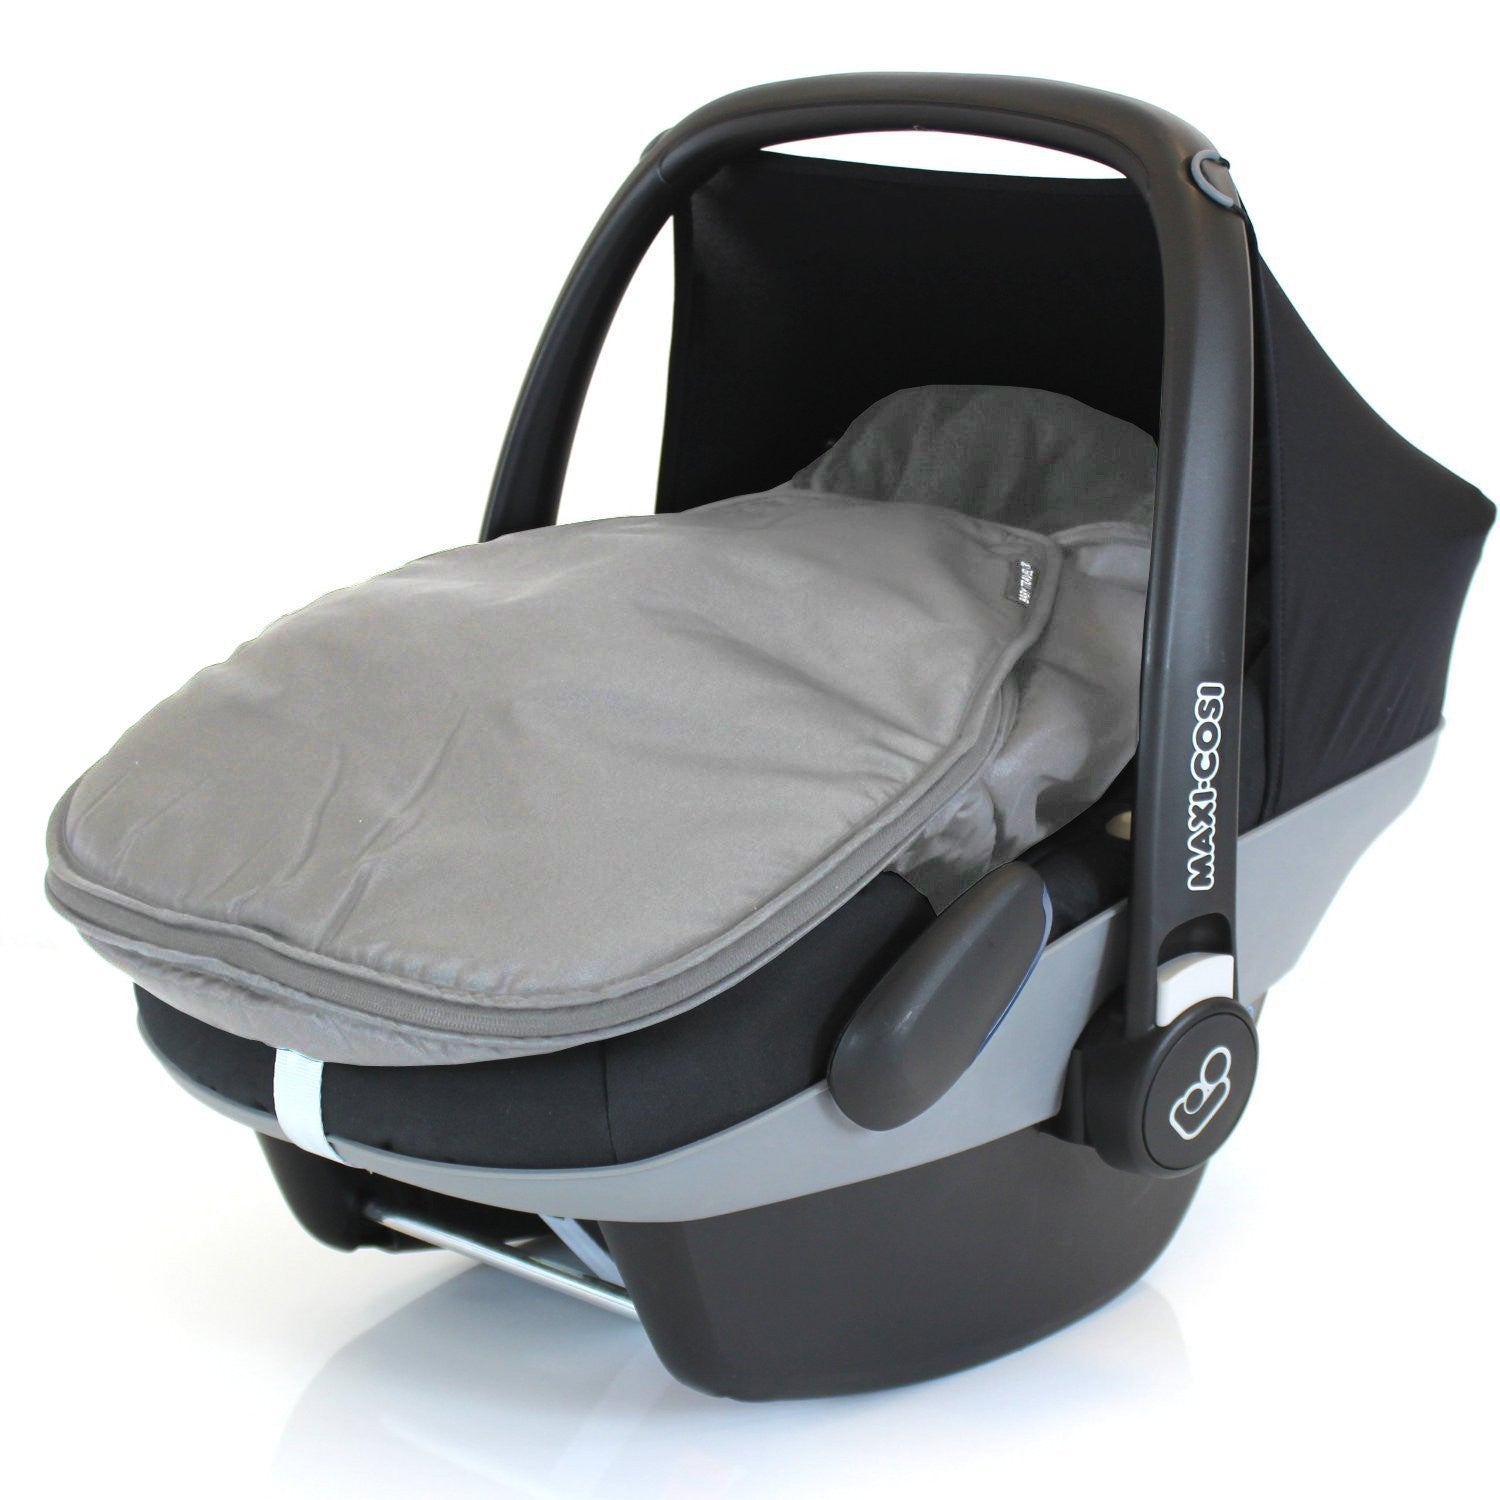 New Footmuff For Maxi Cosi Cabrio Pebble Carseat Universal Grey Fleece Lined